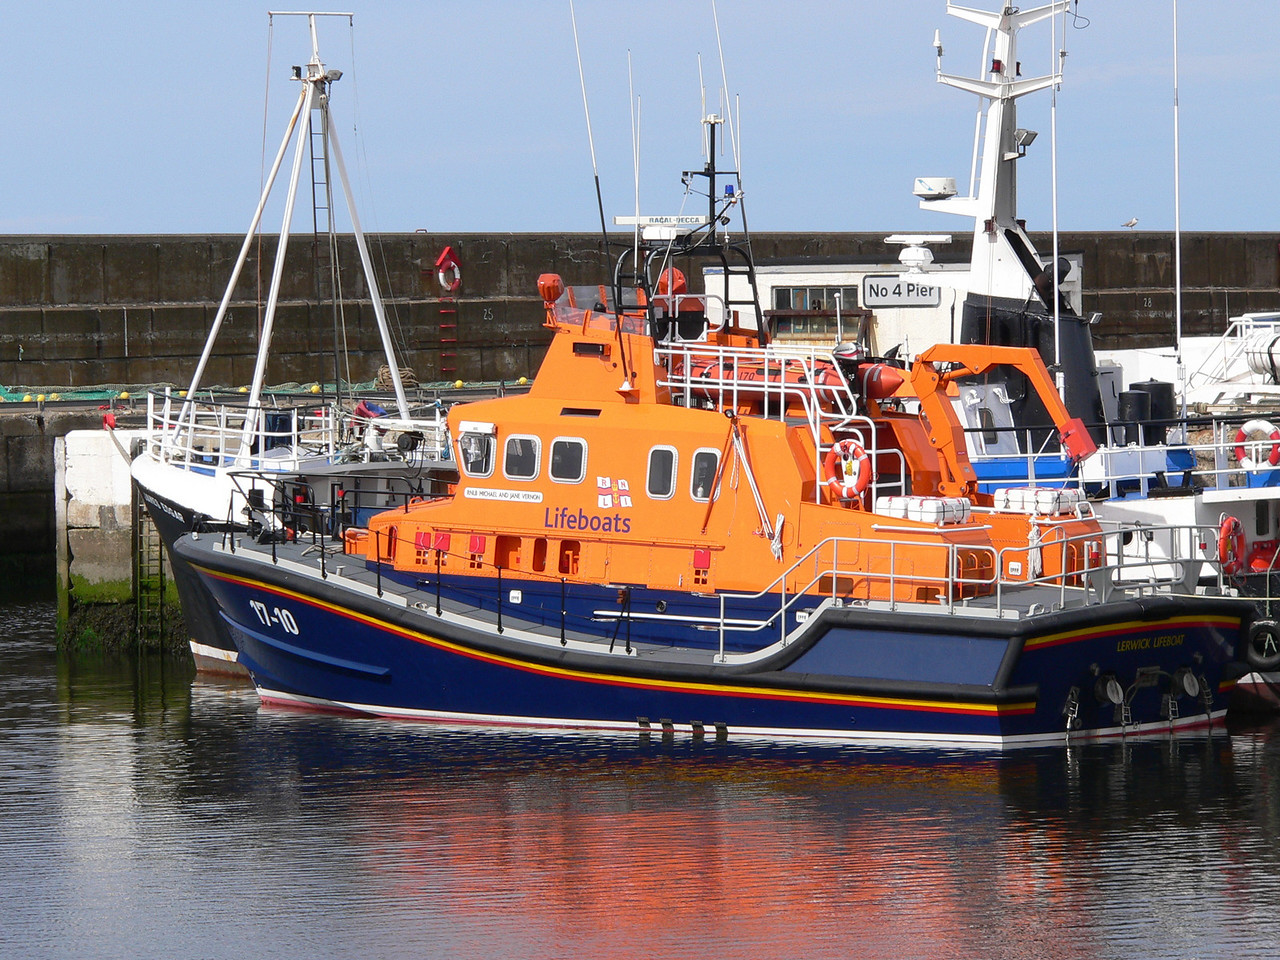 RNLB MICHAEL AND JANE VERNON